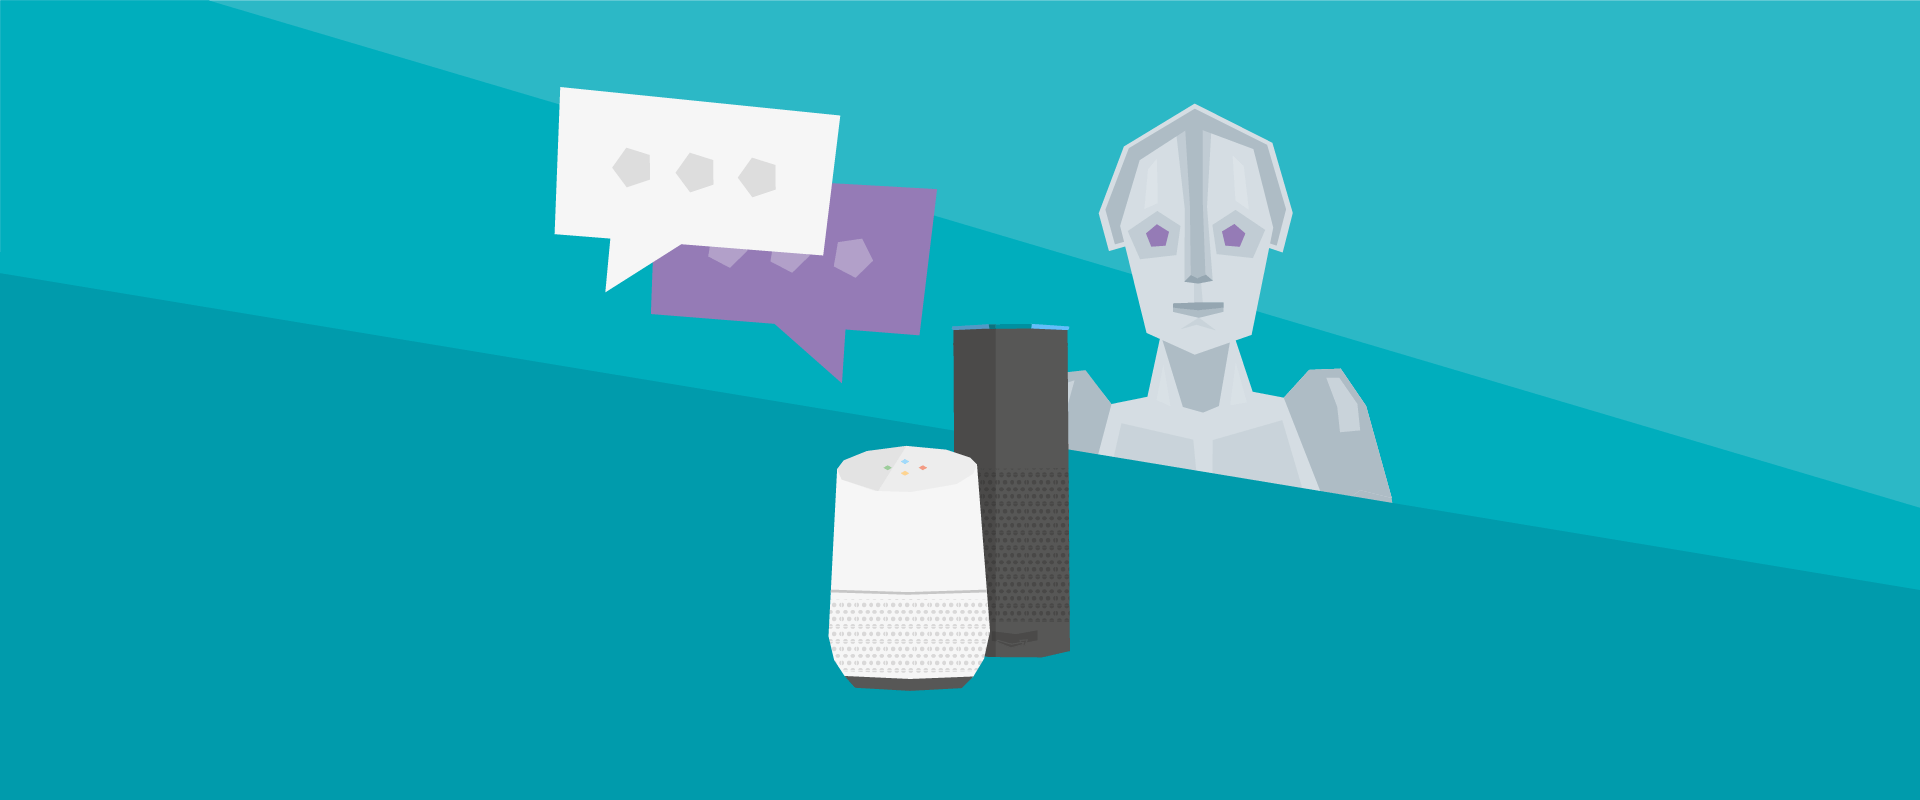 The Future of the Web Is Conversational